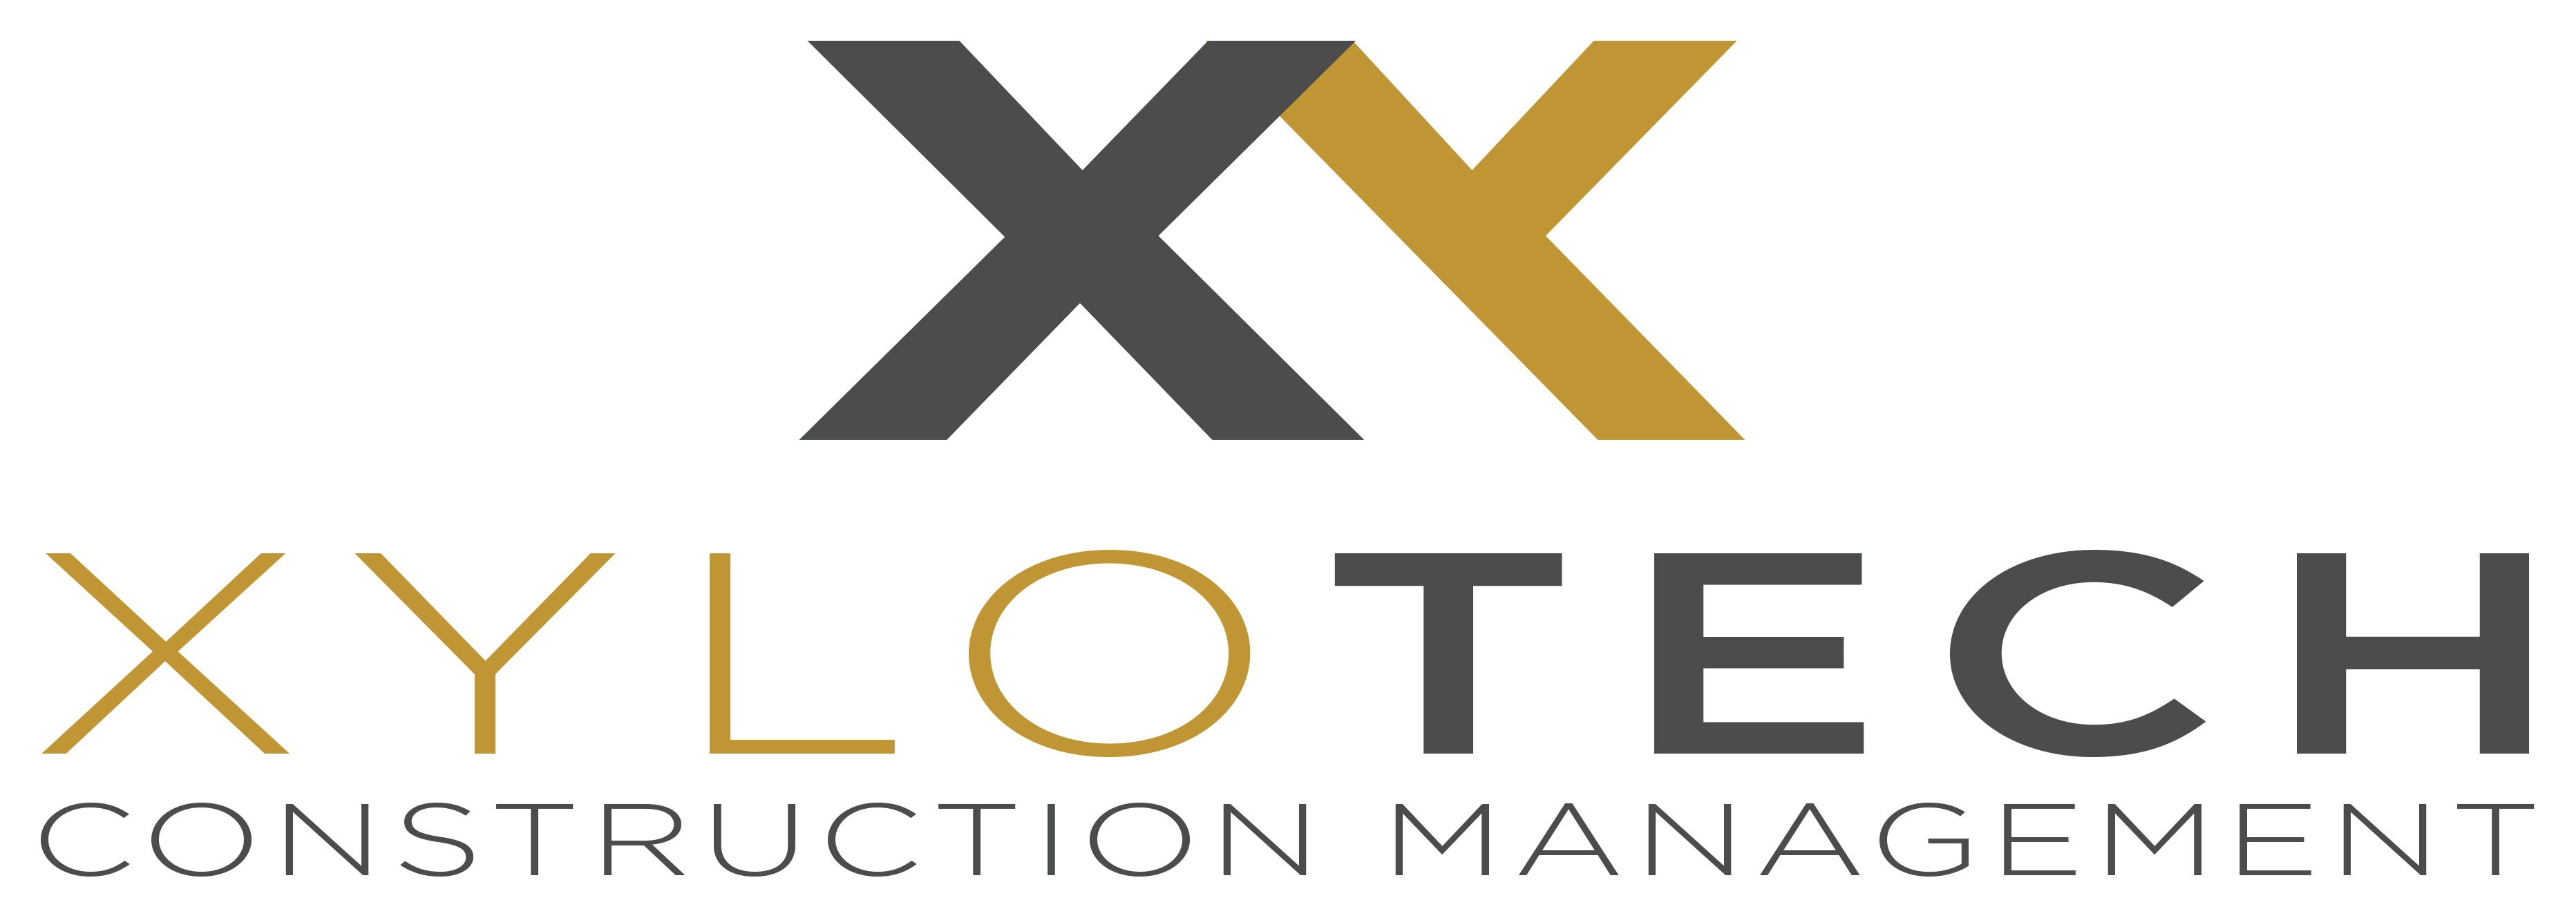 Xylotech - Construction management